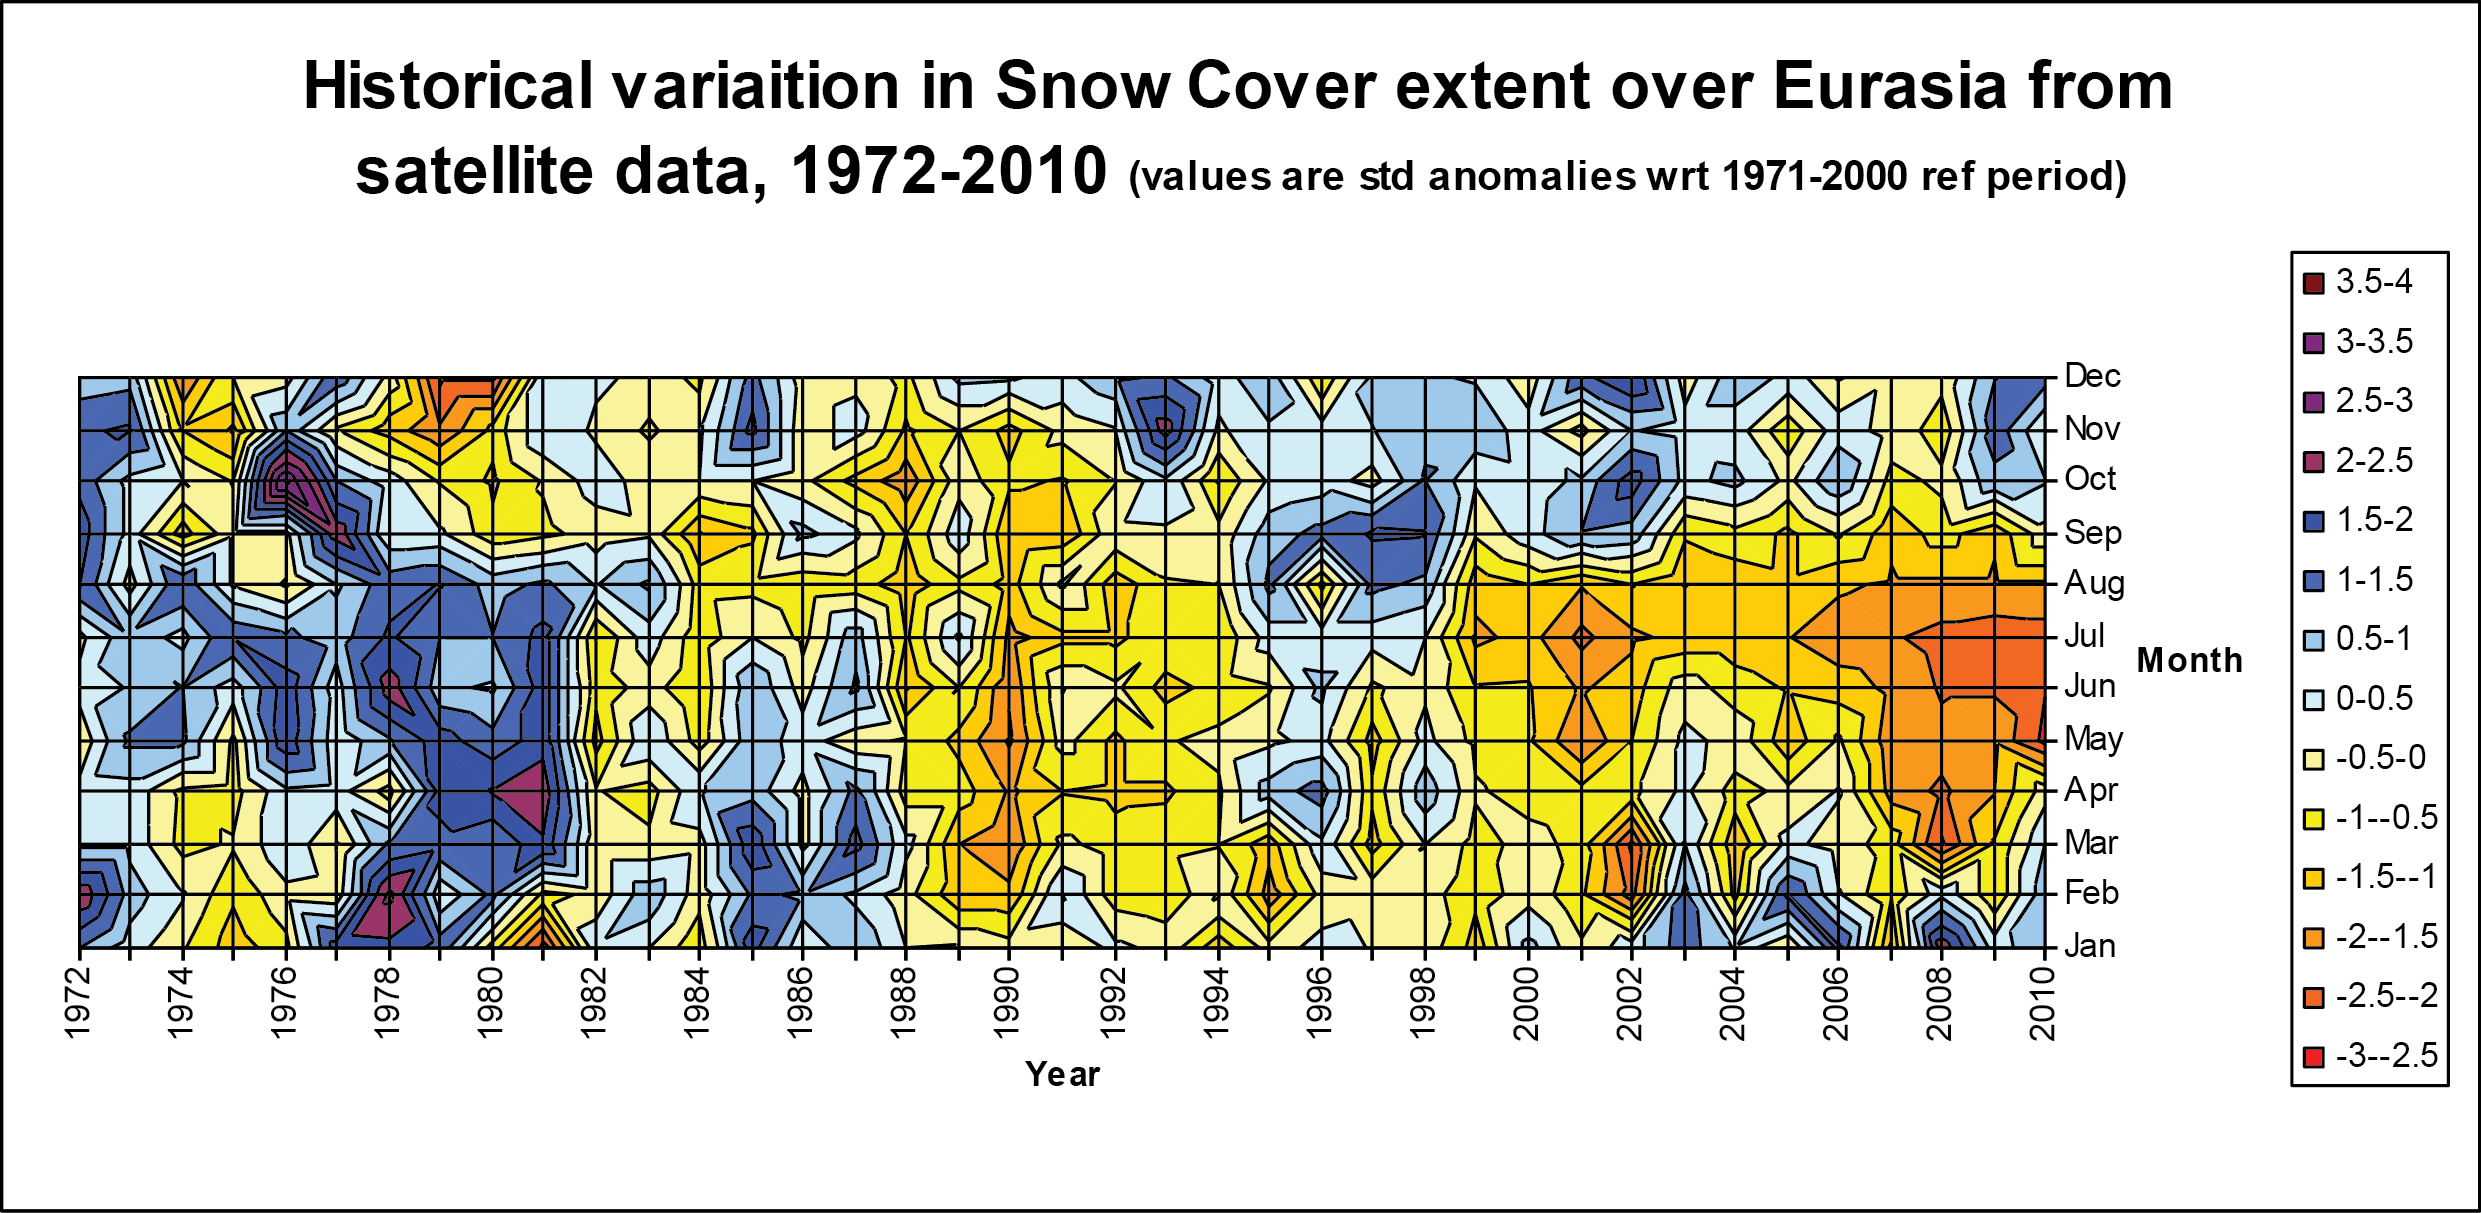 Satellite-derived contour plots of monthly snow cover extent over Eurasia